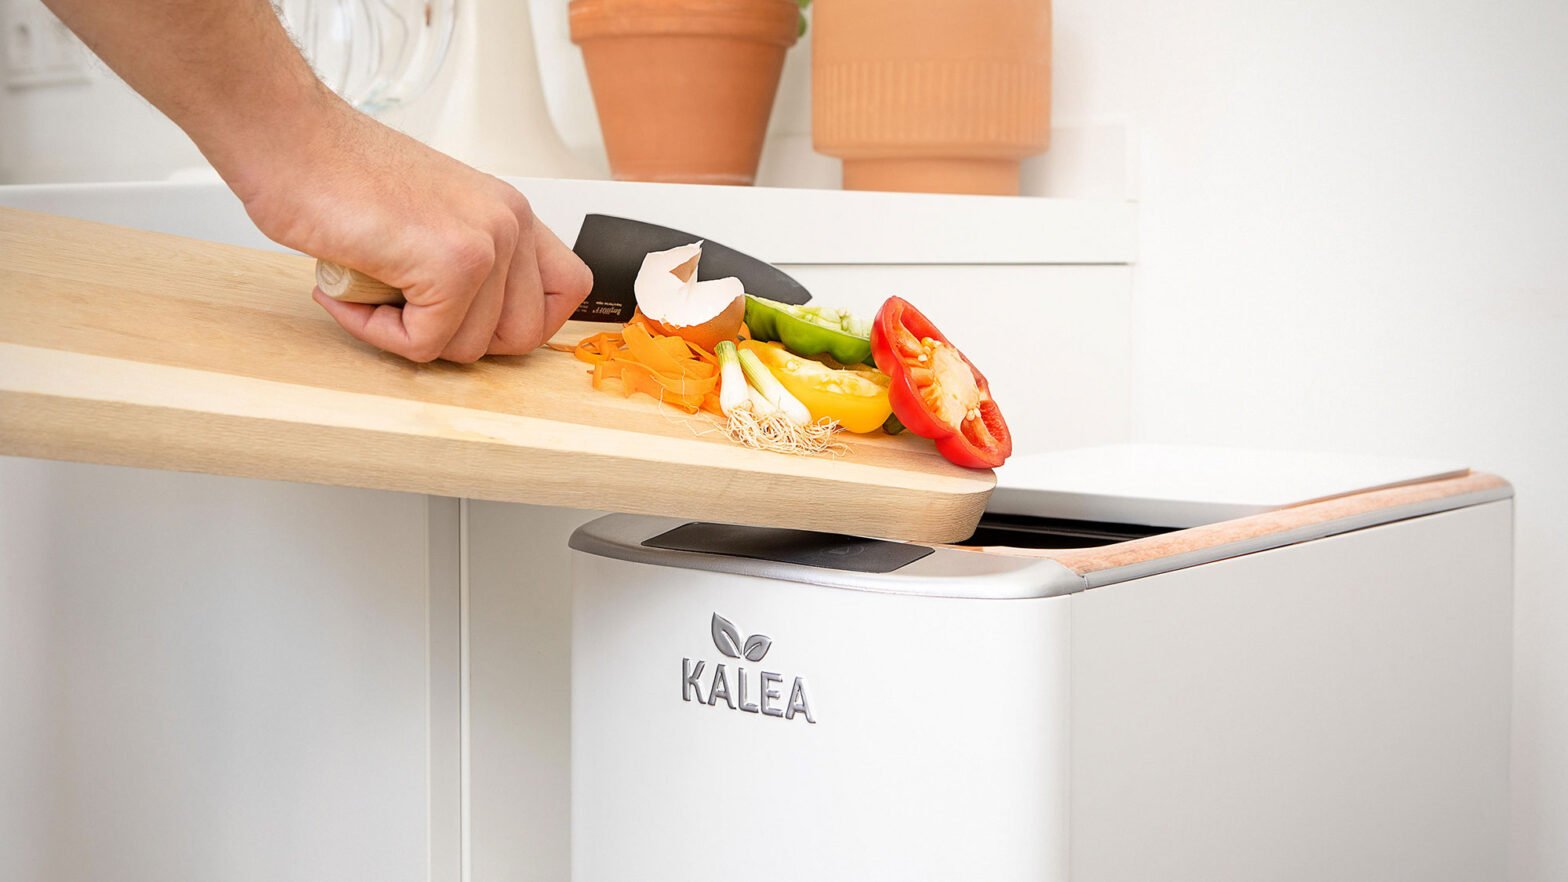 KALEA Fully Automatic Kitchen Composter